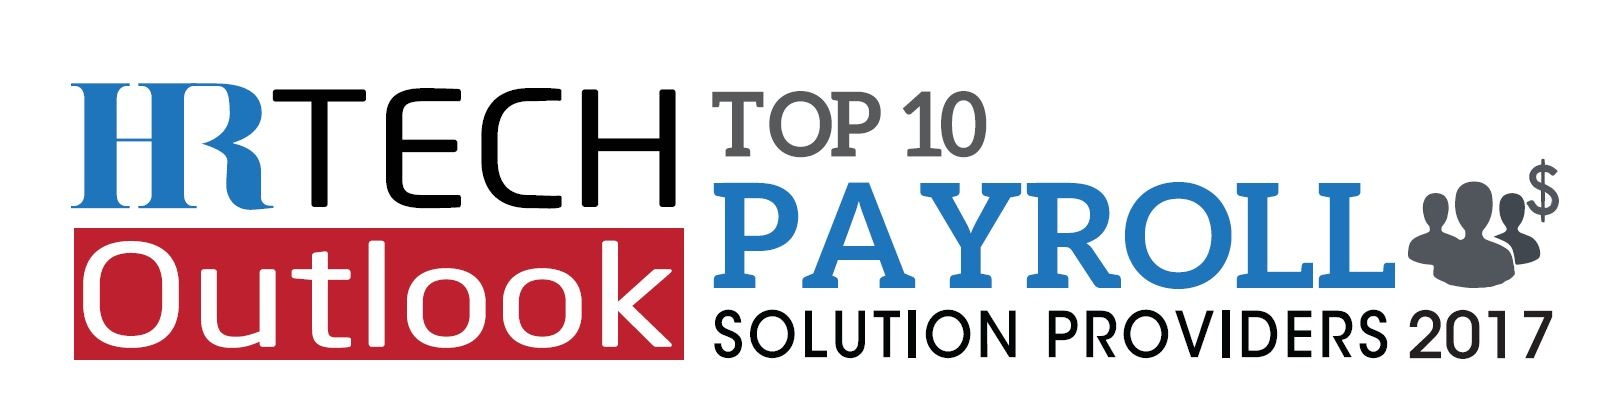 ClubPay Top 10 Payroll Provider 2017